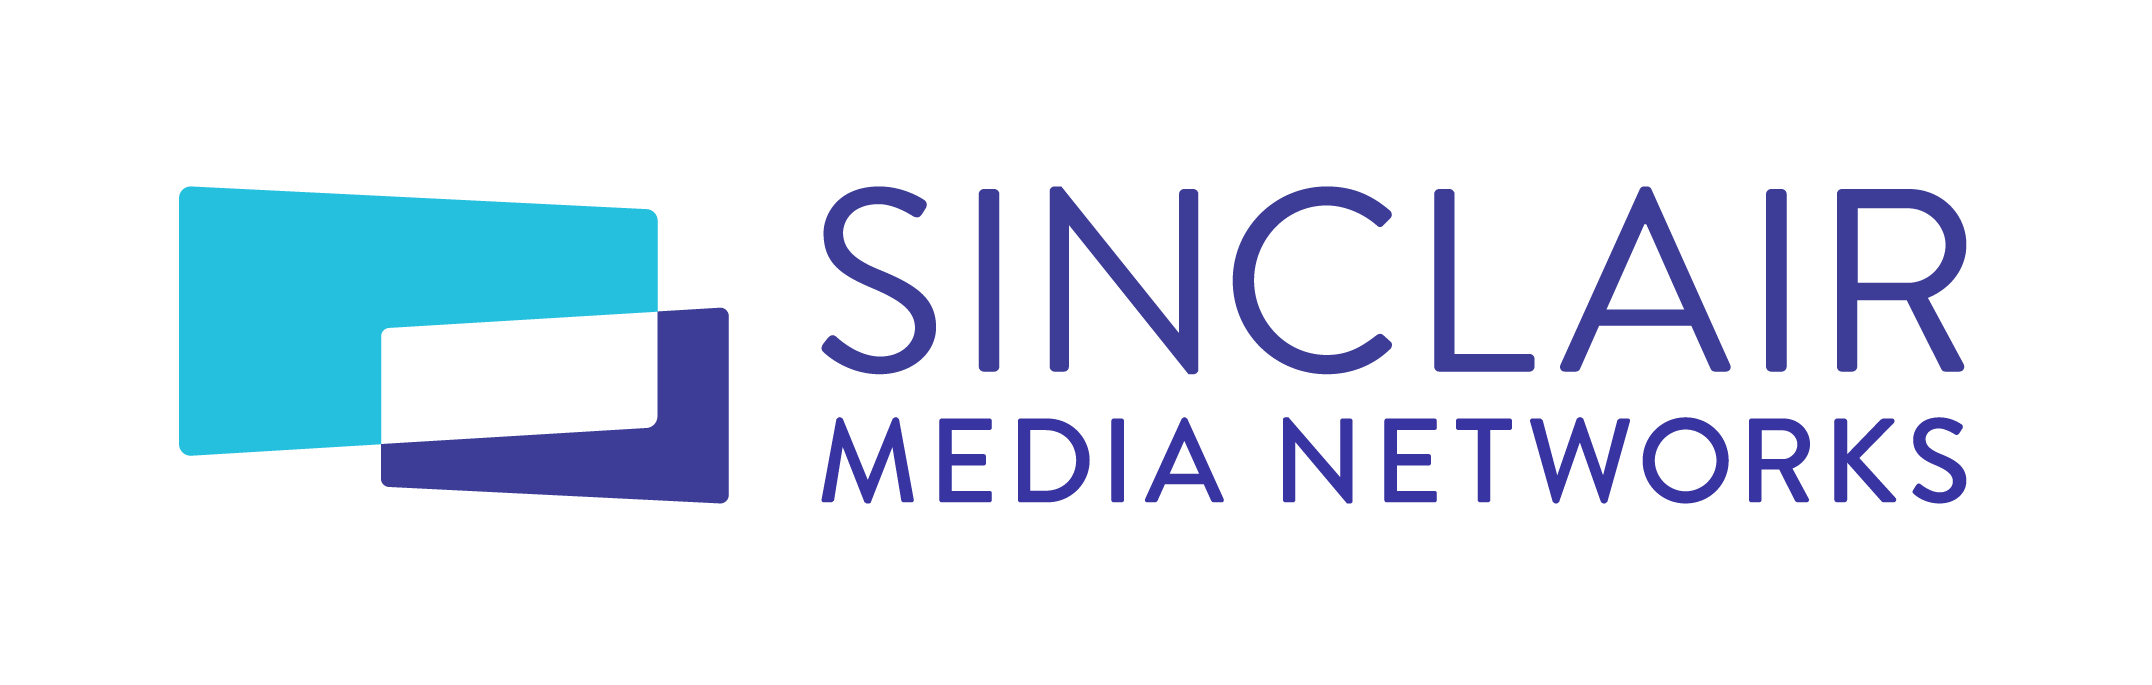 Sinclair Broadcast Group InSites logo